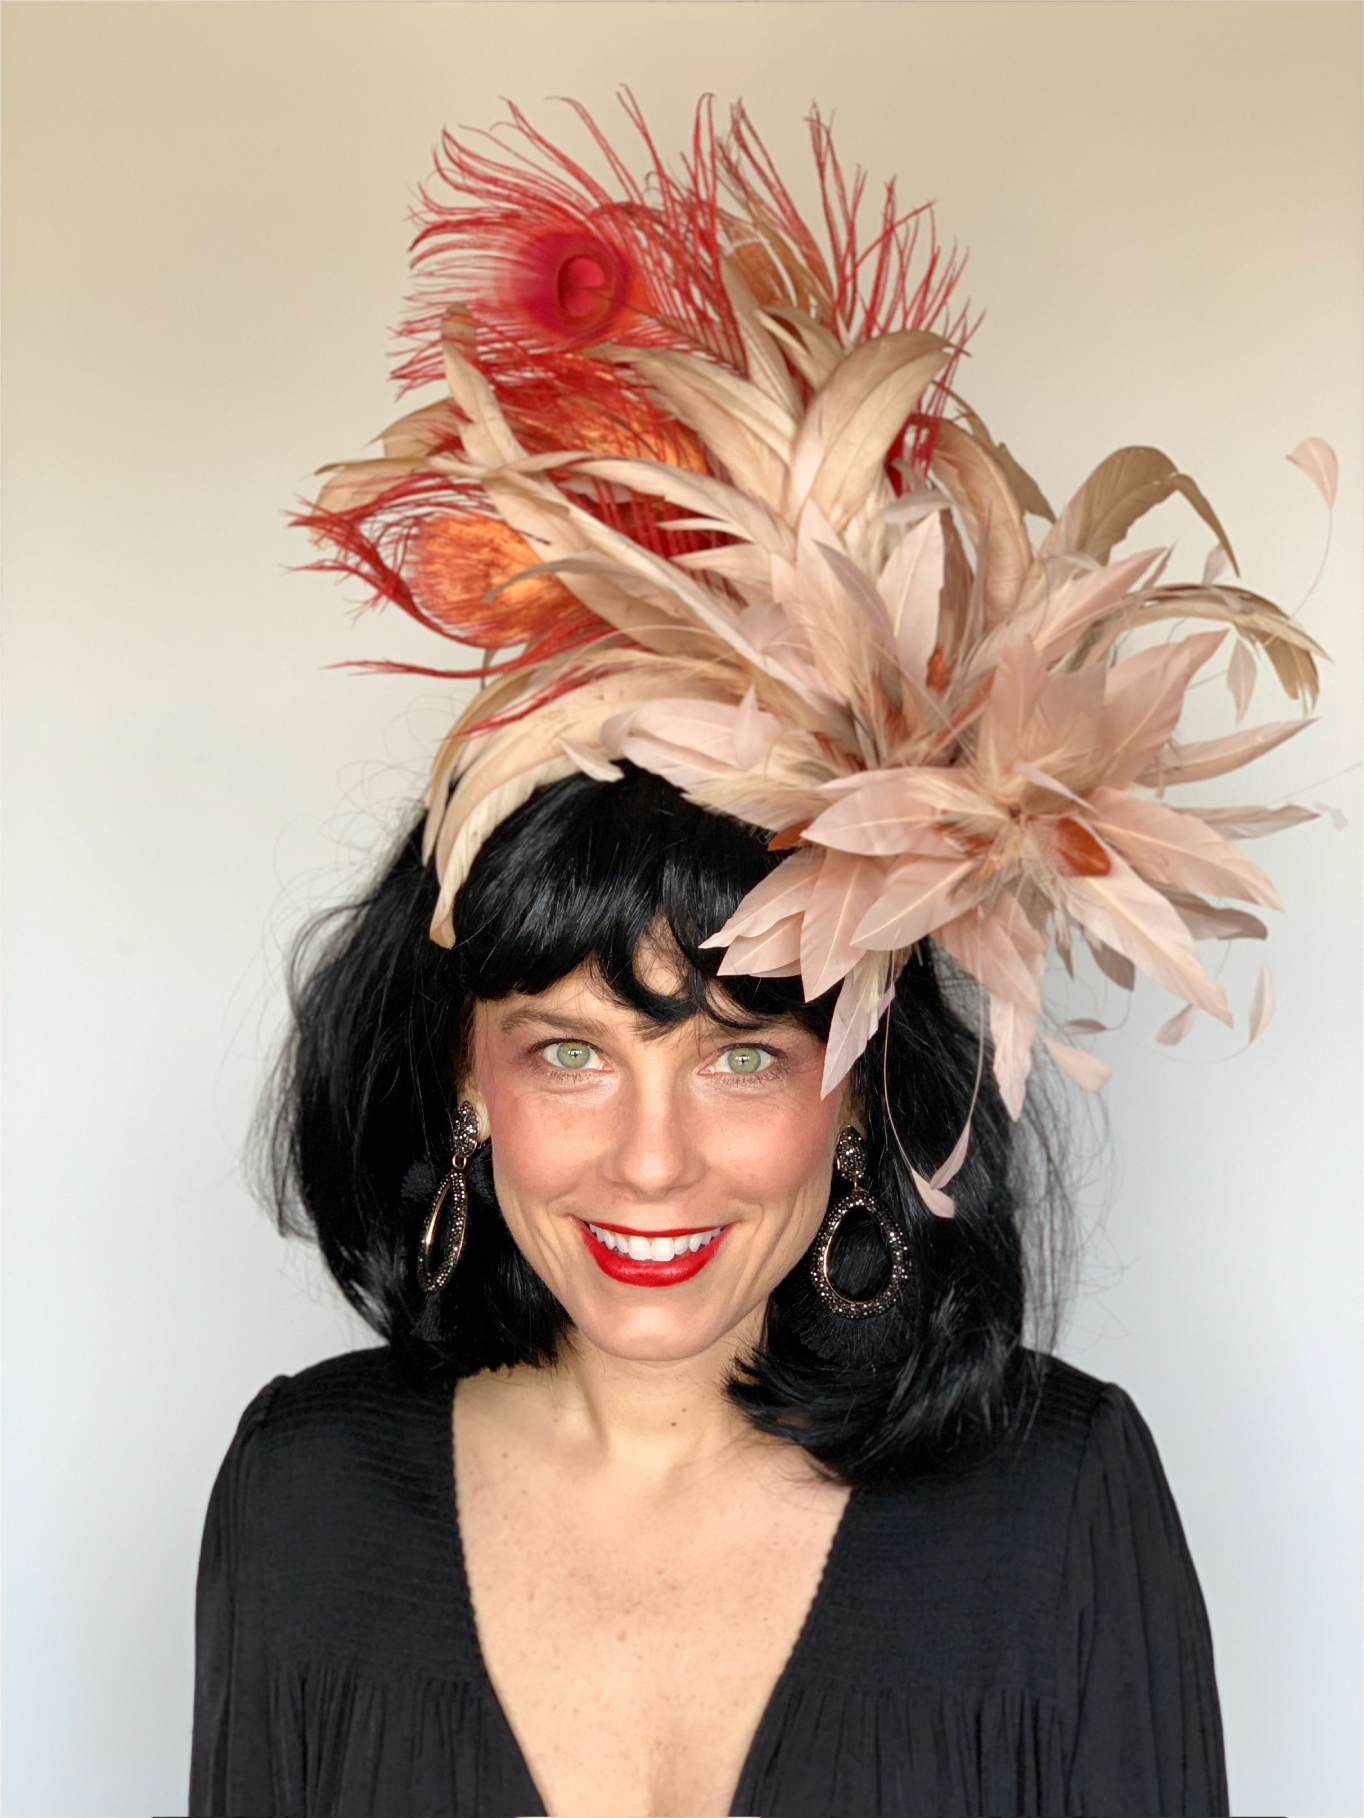 Kenzie Kapp Facinator Derby Hat orange feathers